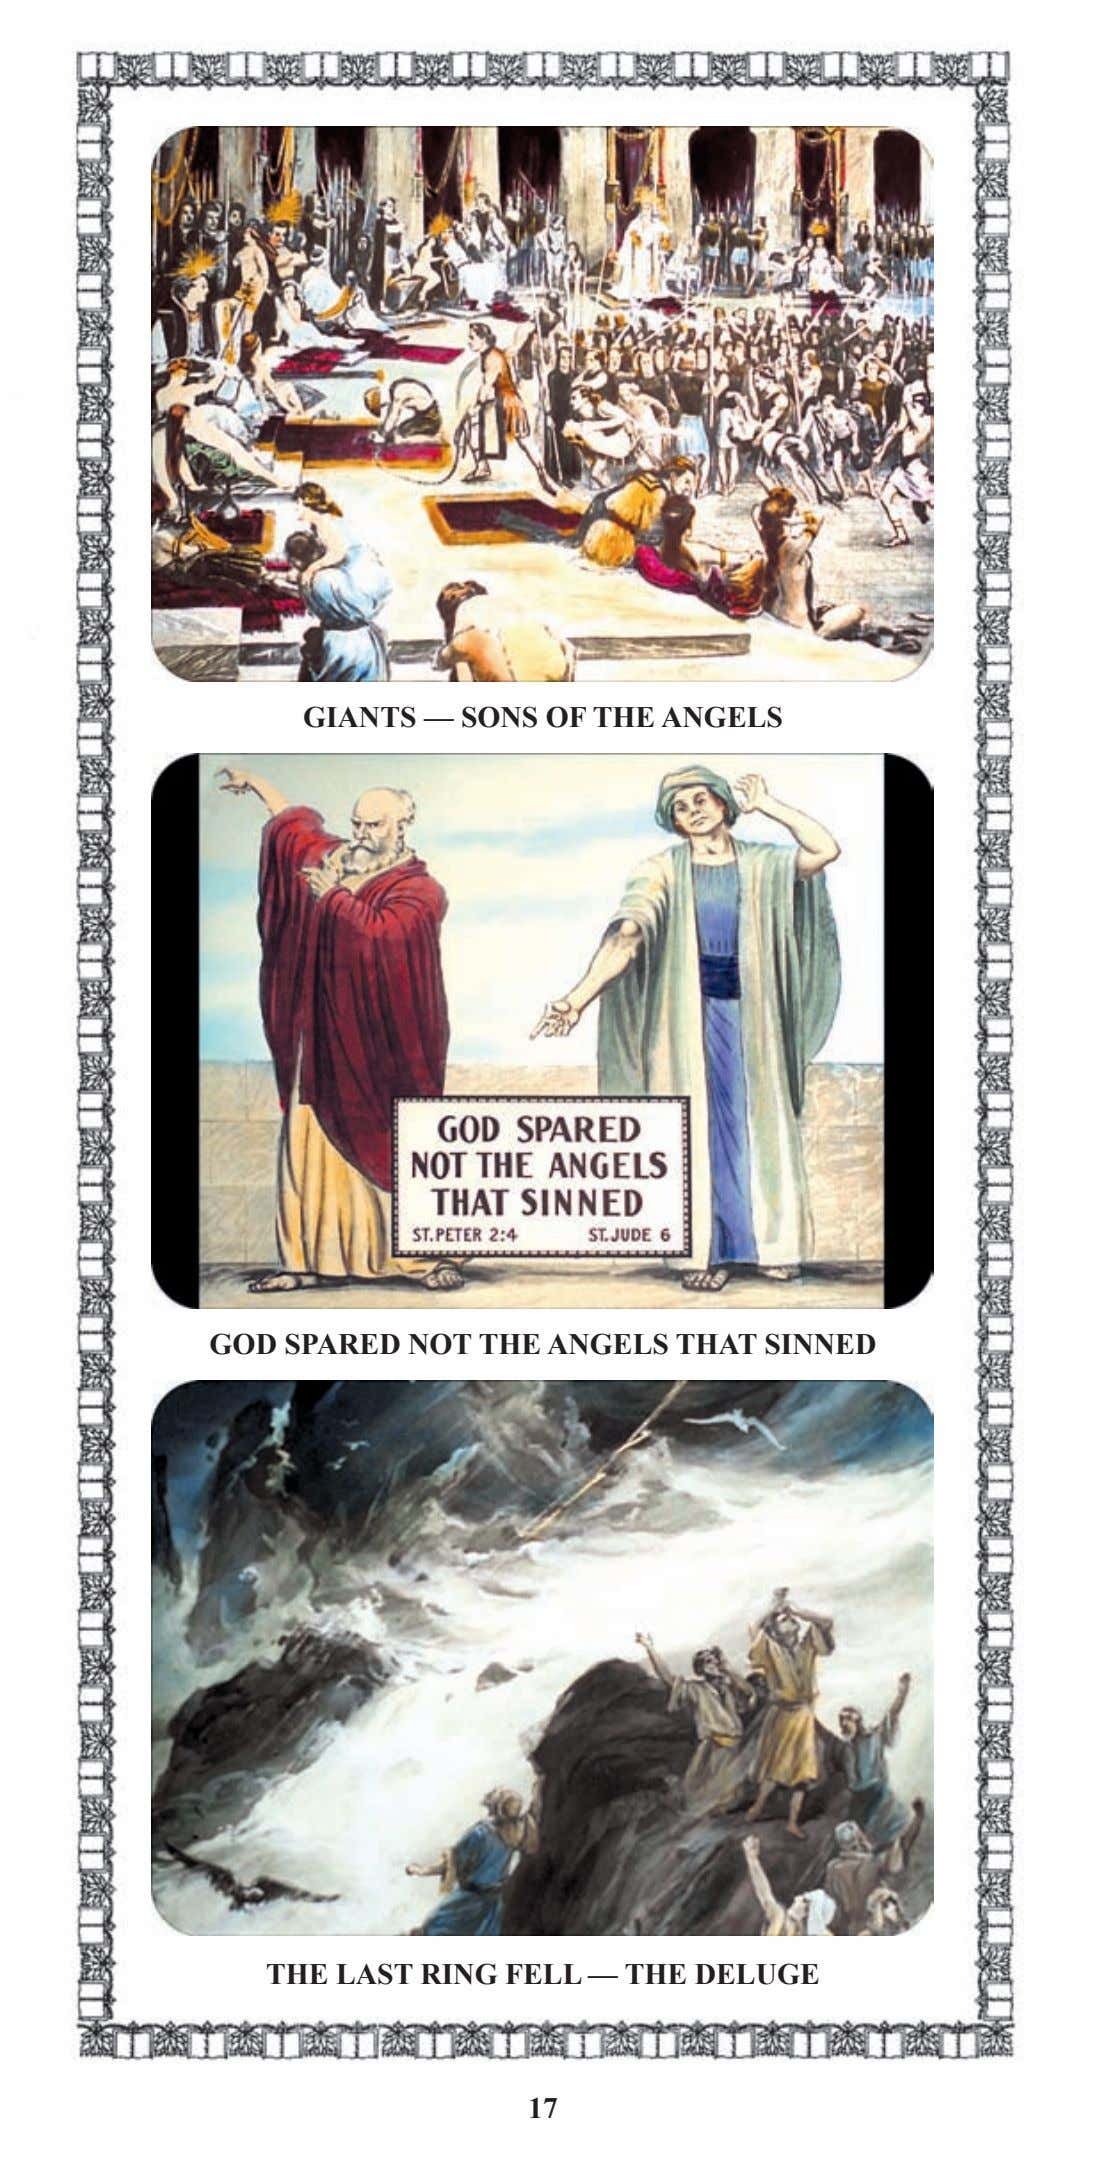 GIANTS — SONS OF THE ANGELS GOD SPARED NOT THE ANGELS THAT SINNED THE LAST